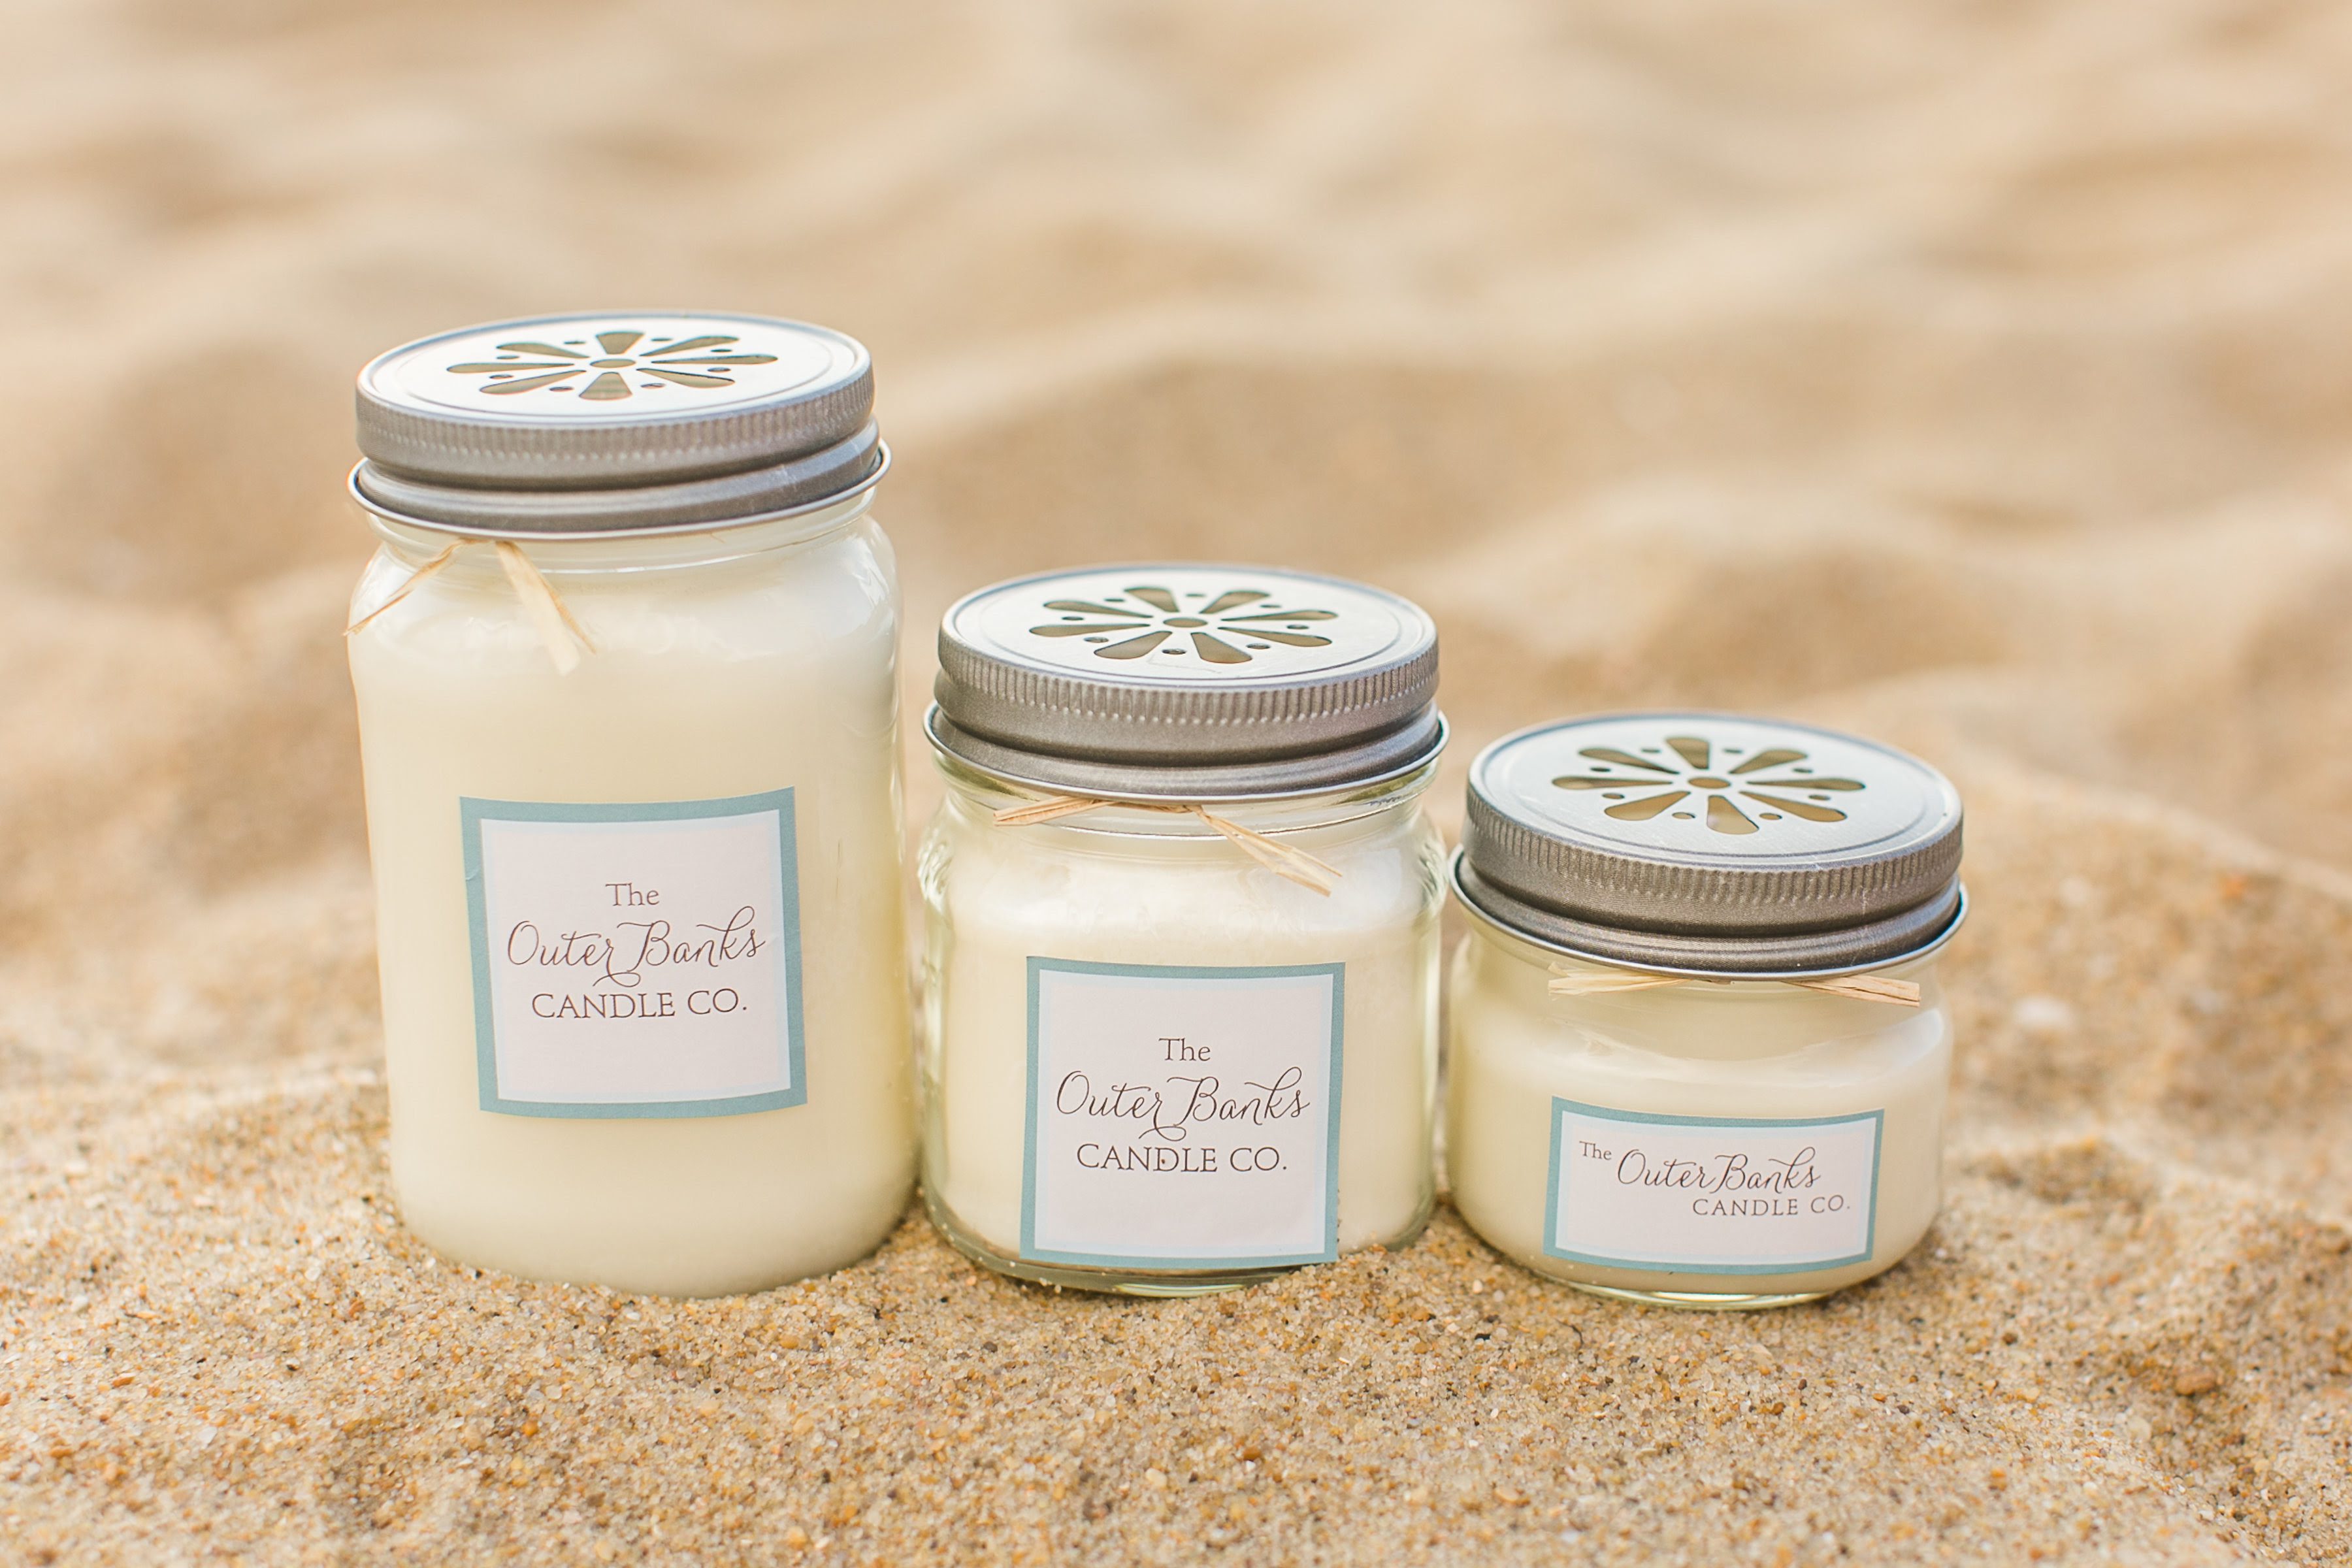 Vintage-Style Soy Candles « The Outer Banks Candle Company